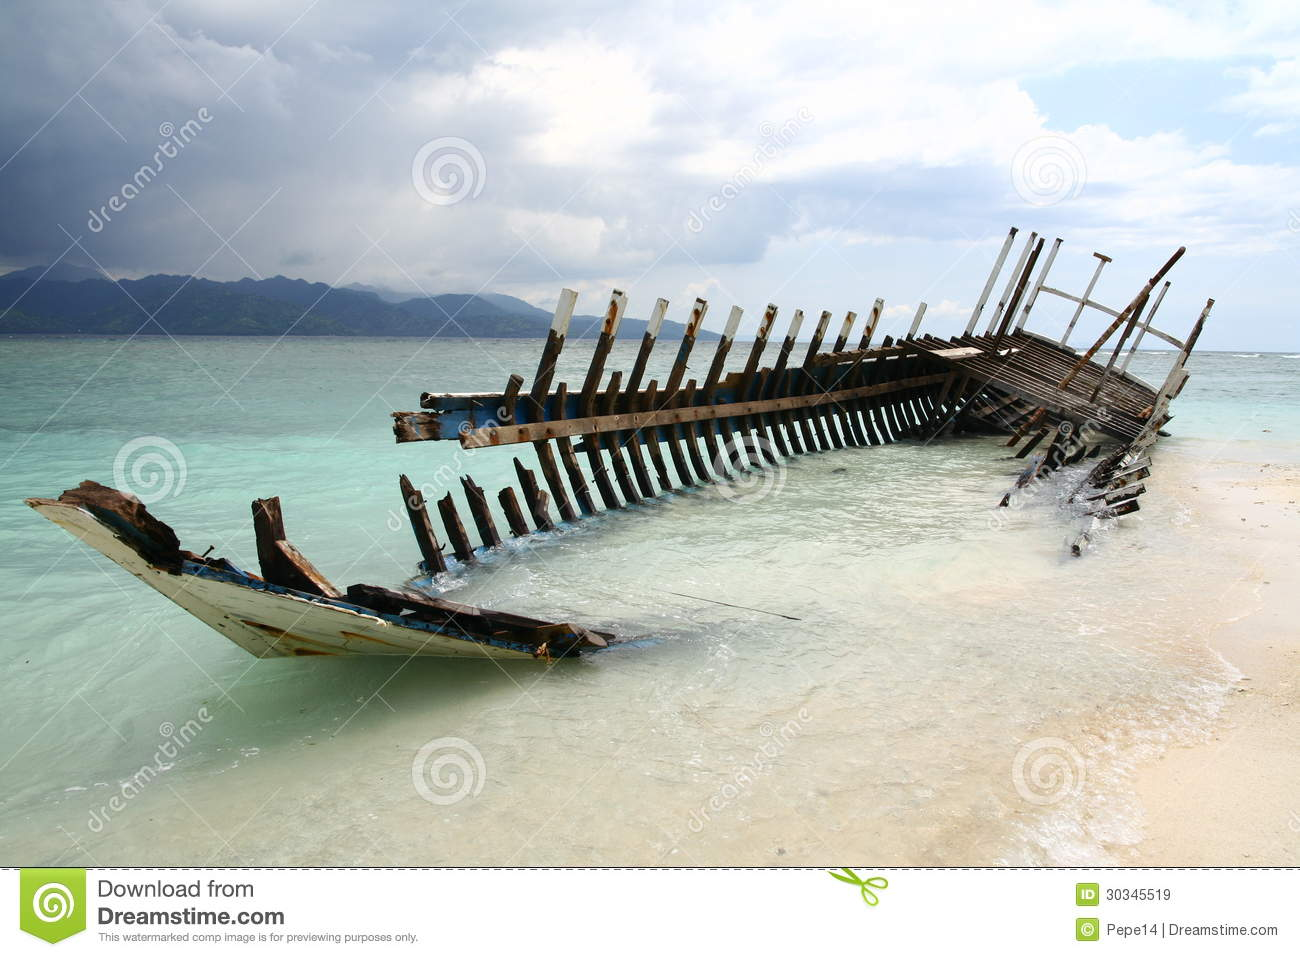 Wreck of the boat on the beach